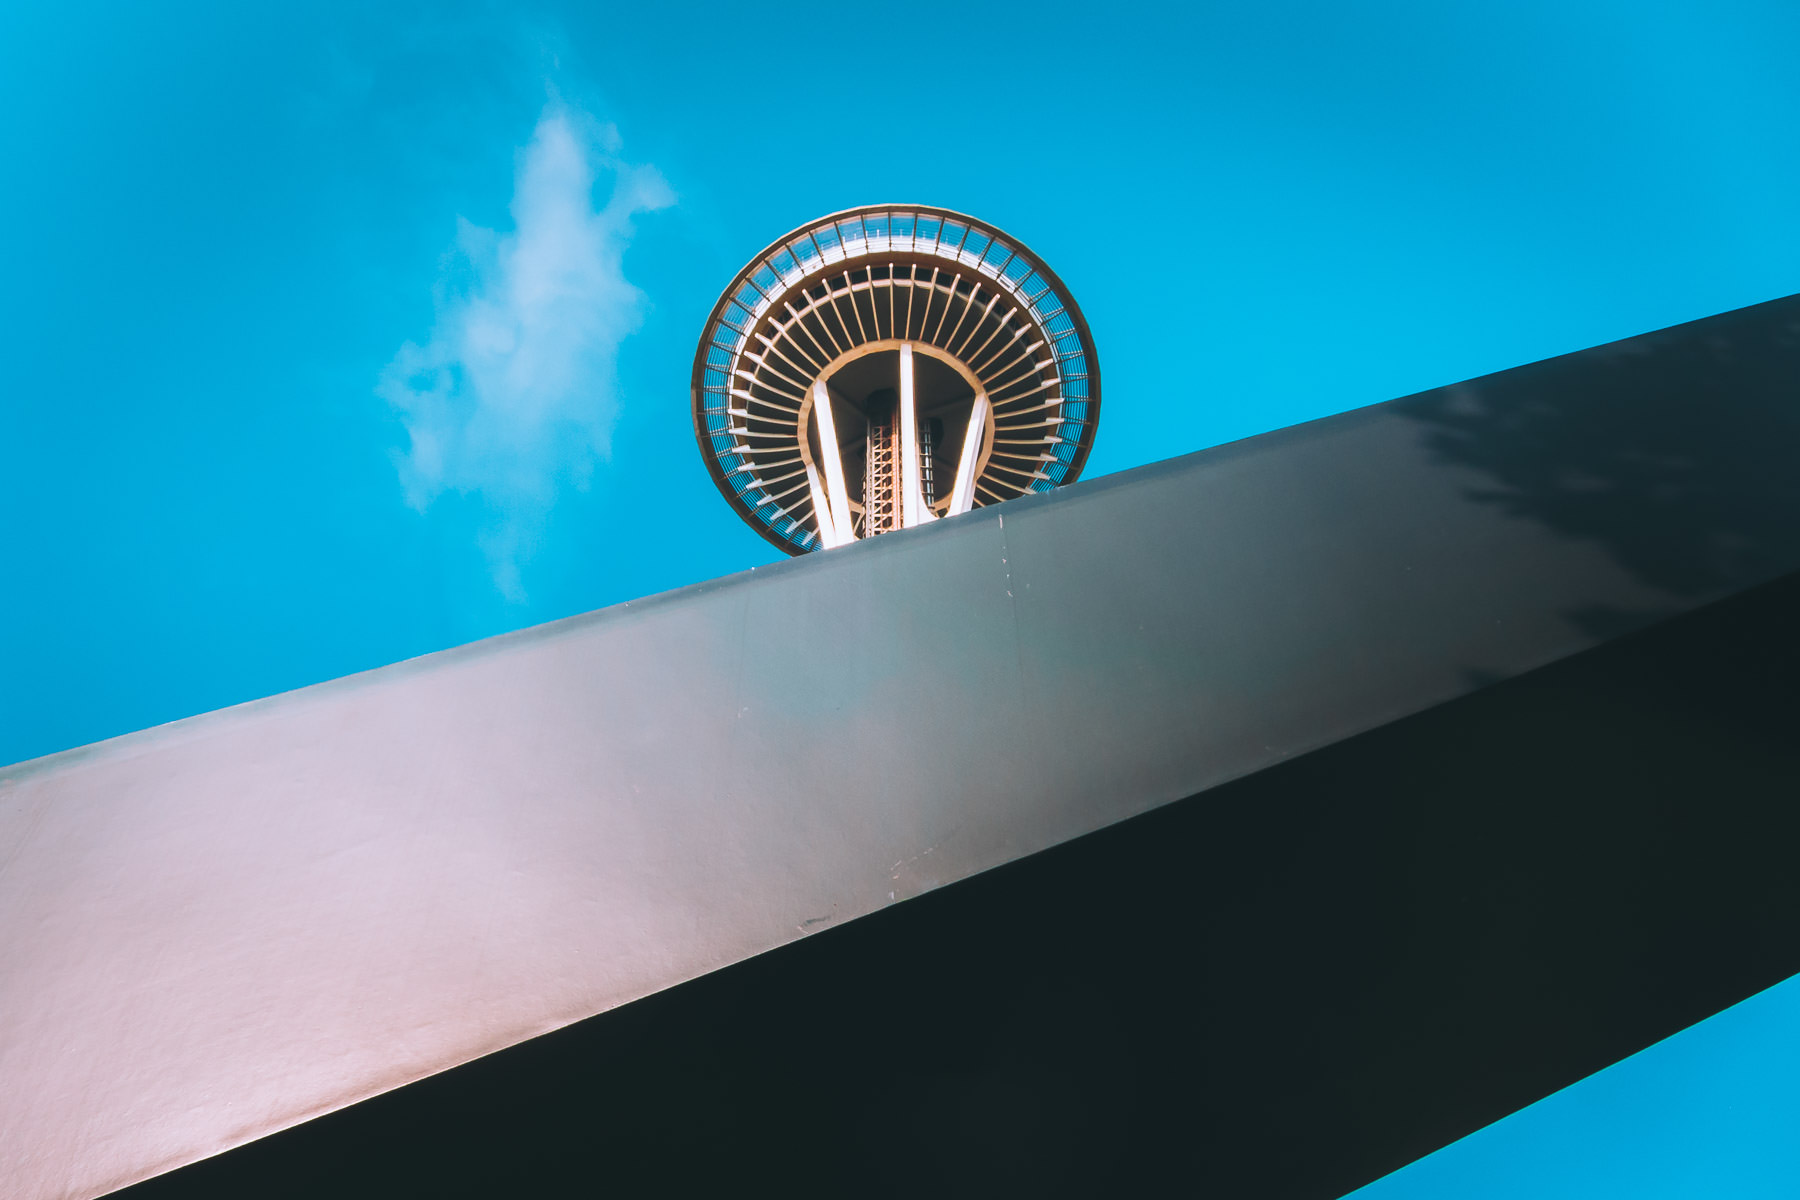 The Seattle Space Needle rises over part of a nearby sculpture.